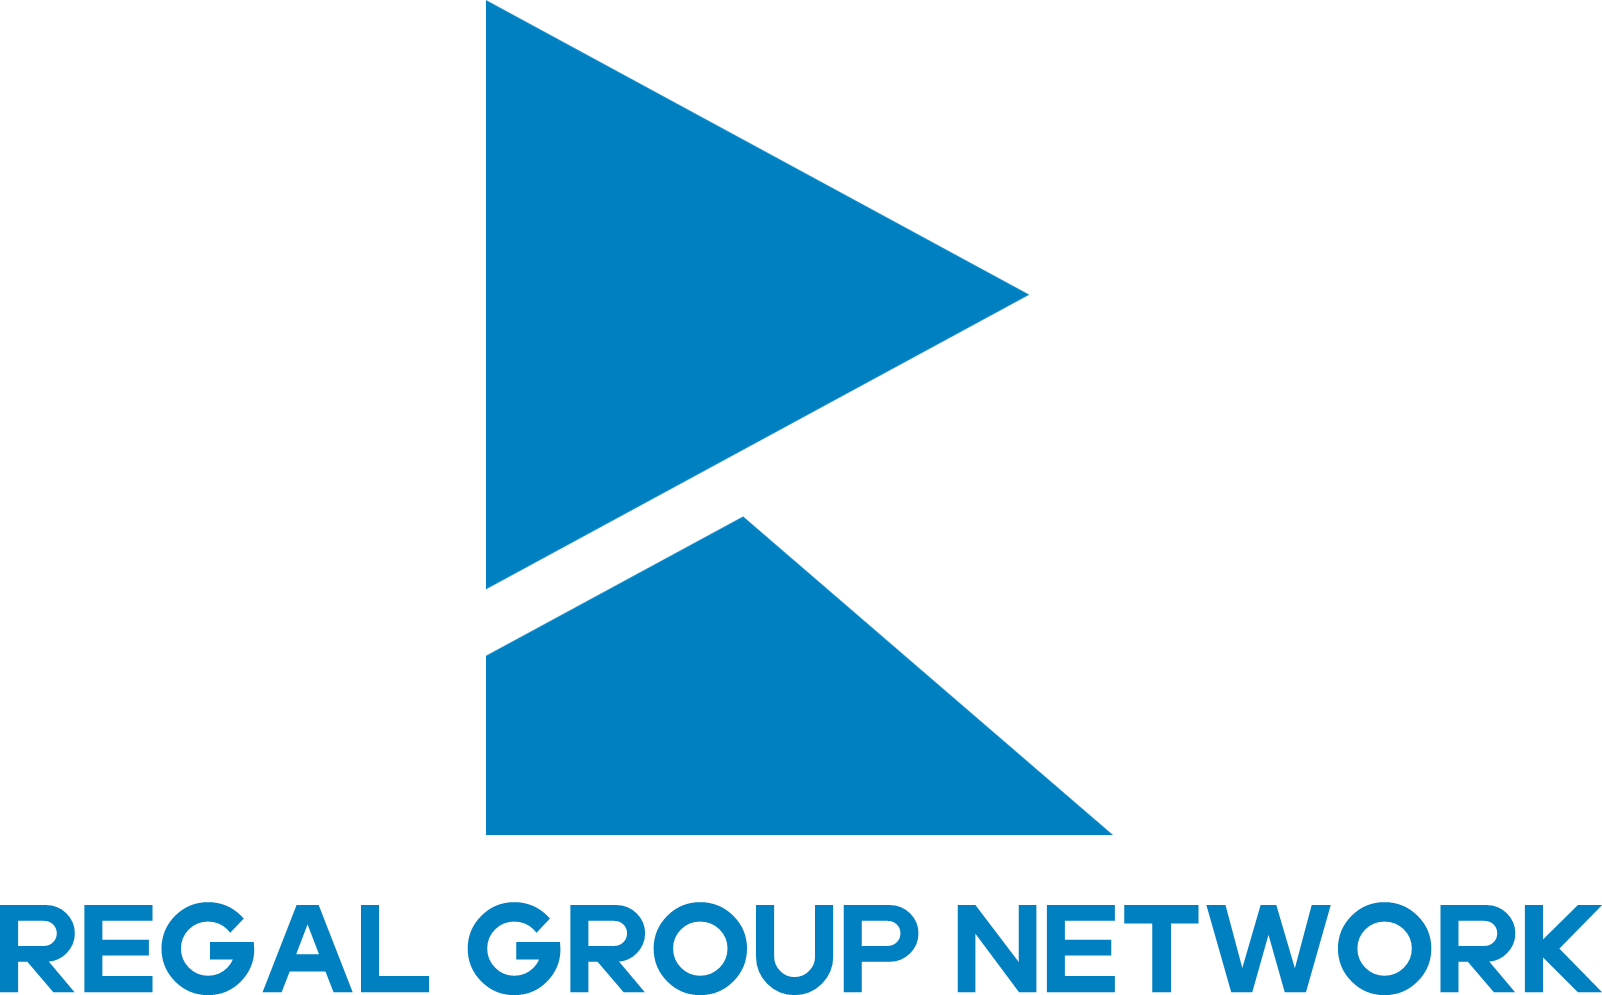 Regal Group Network